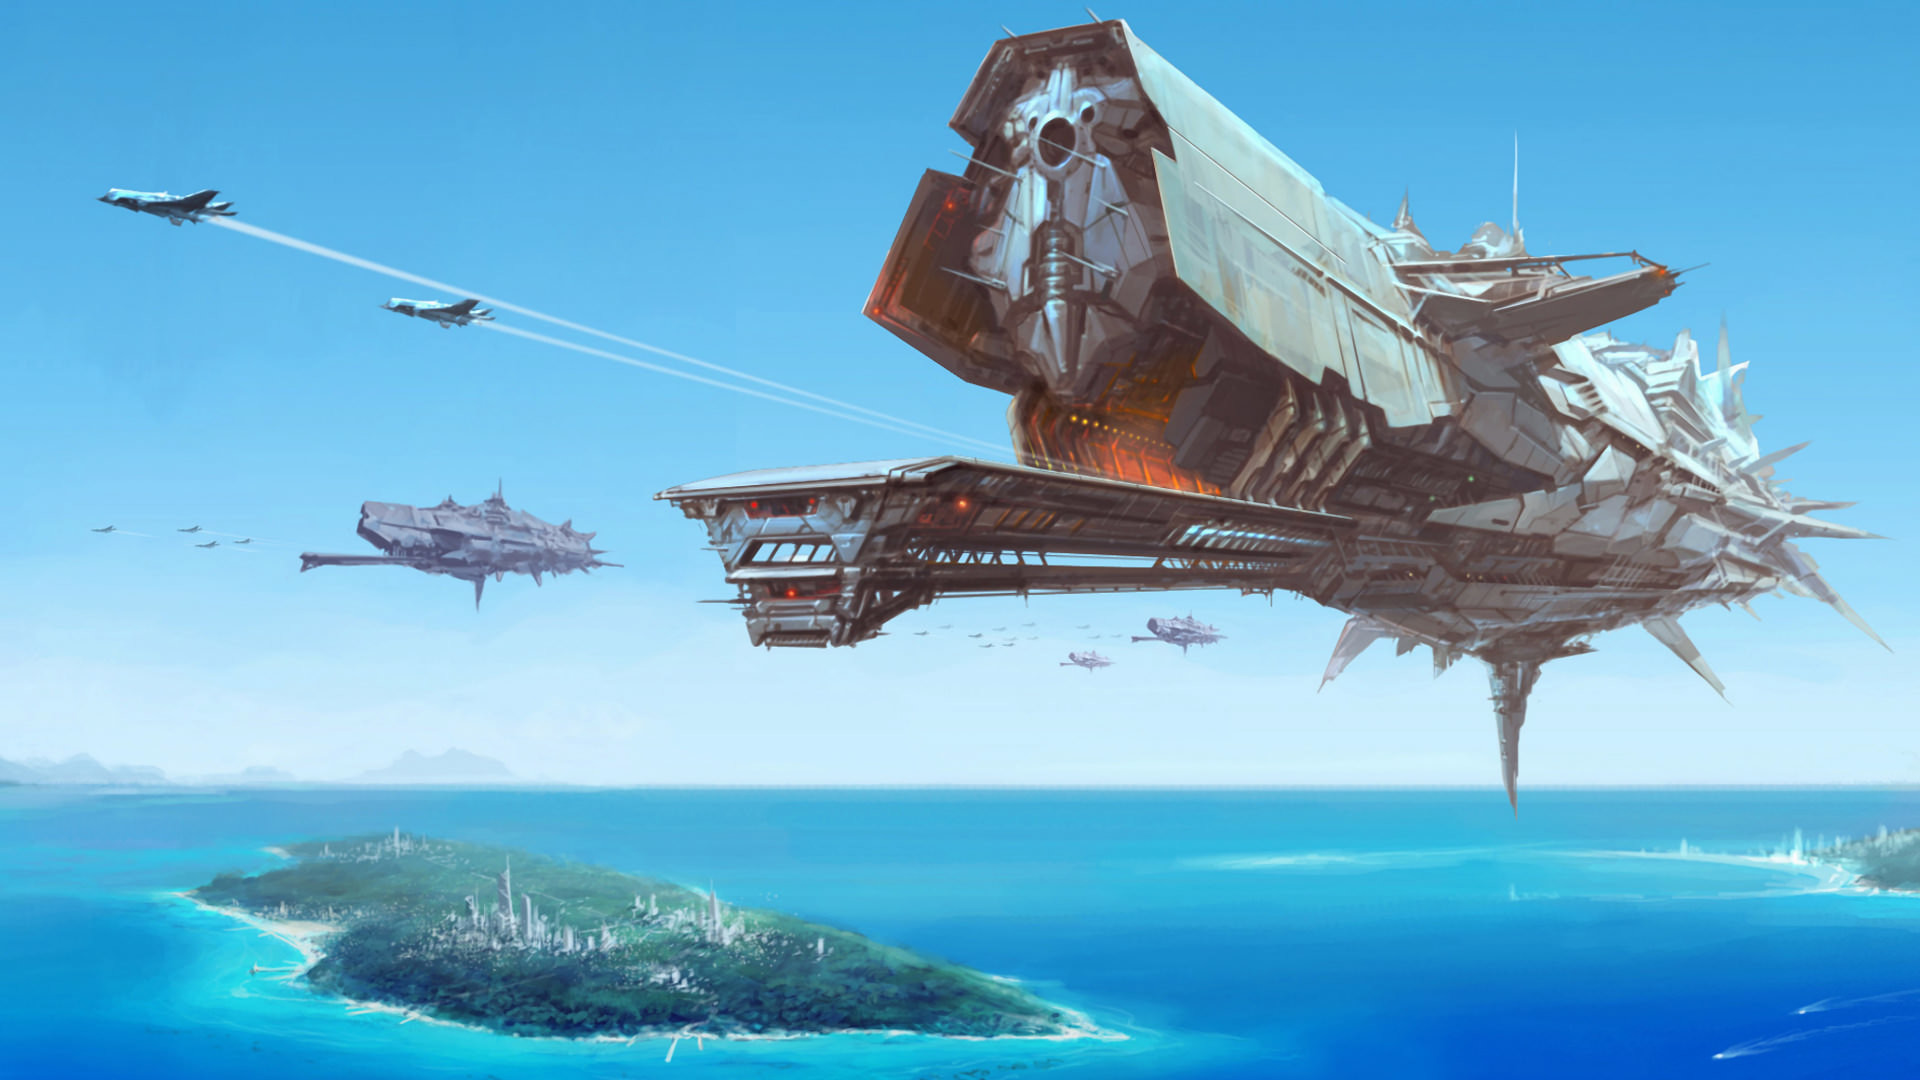 Sci-Fi Battle Space Ship Wallpaper – 1920 x Impressive digital painting of  a enormous battle space ship flying over a futuristic city island.